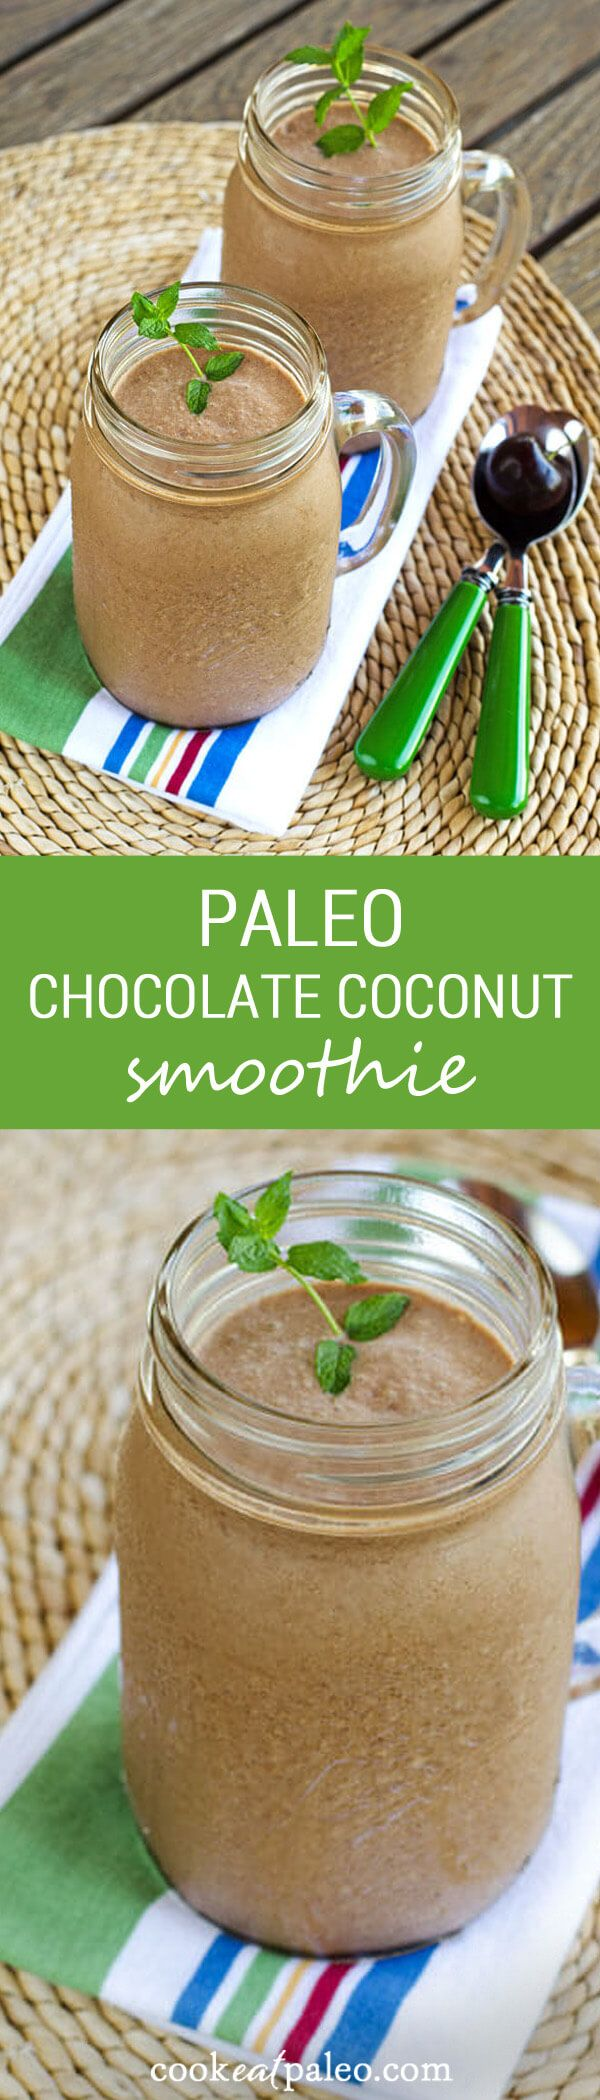 This paleo chocolate coconut smoothie is creamy and chocolaty with no dairy or added sugar. It has just 5 ingredients and as much protein as a couple eggs. ~ http://cookeatpaleo.com